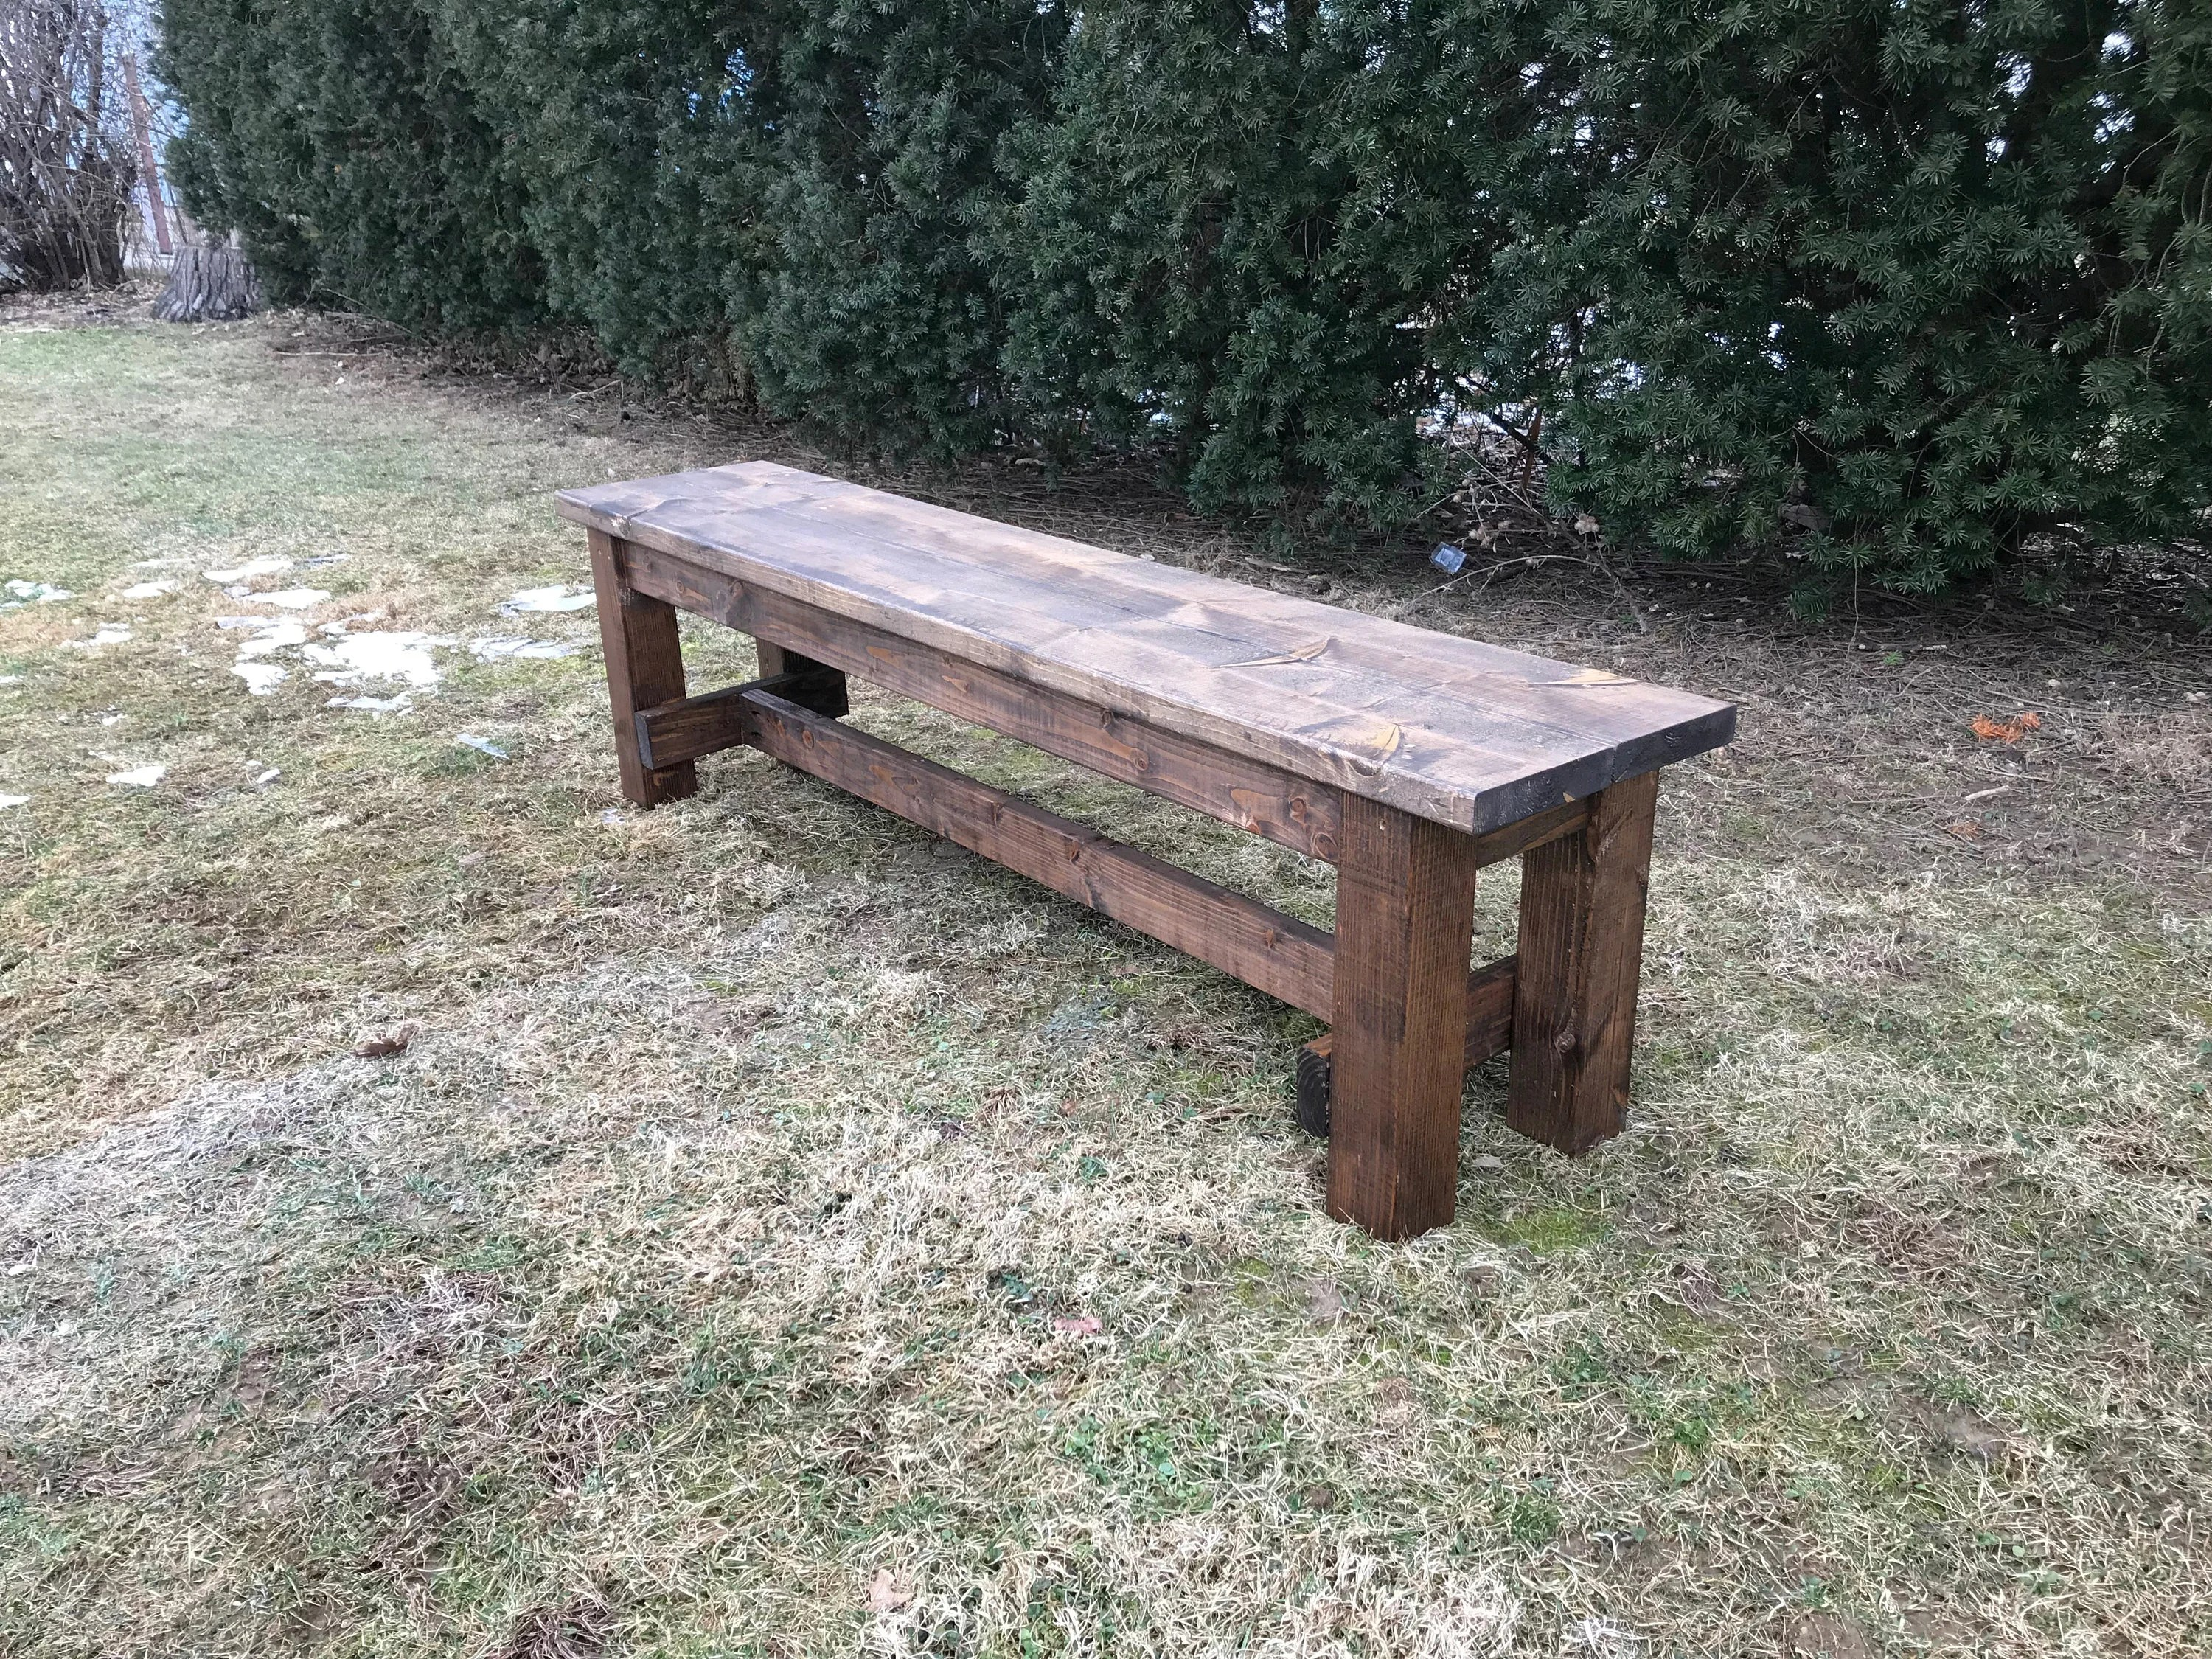 Wooden Bench Table Farmhouse Style Bench Farm Table Bench Rustic Bench Wooden Bench Kitchen Bench Custom Bench All Sizes And Stains